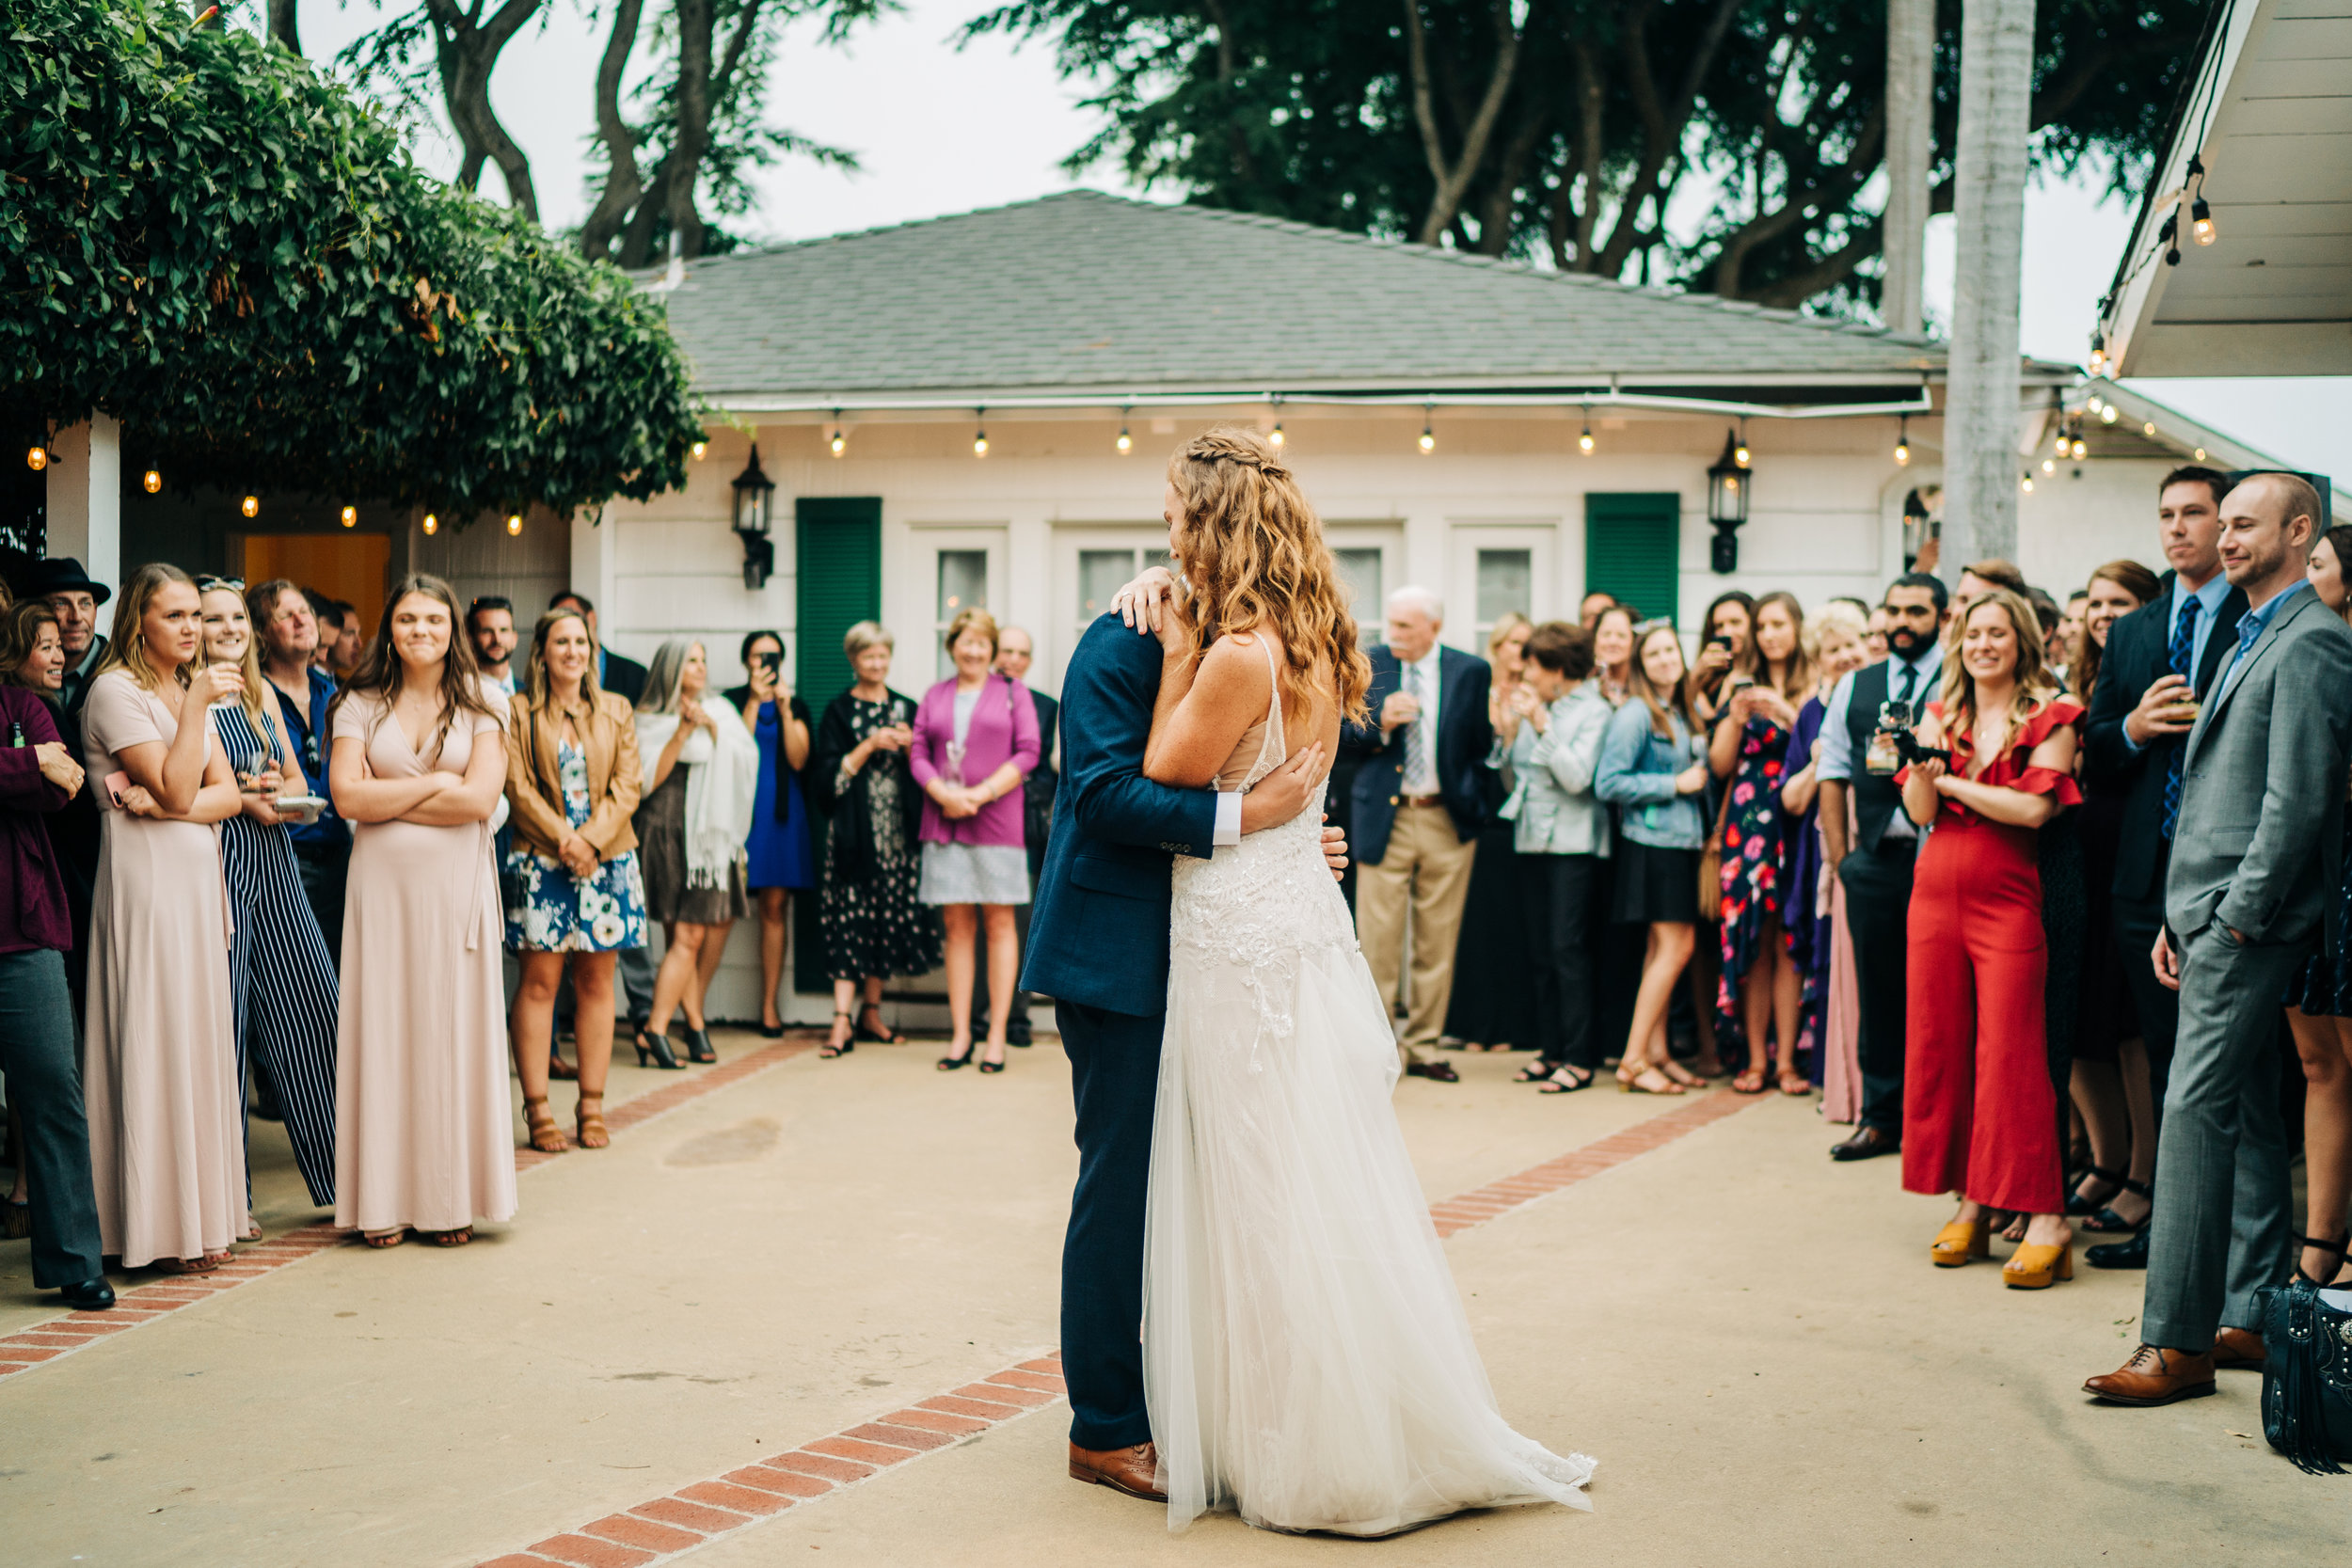 allie-shupe-tyler-wiggins-wedding-santa-barbara 211.jpg